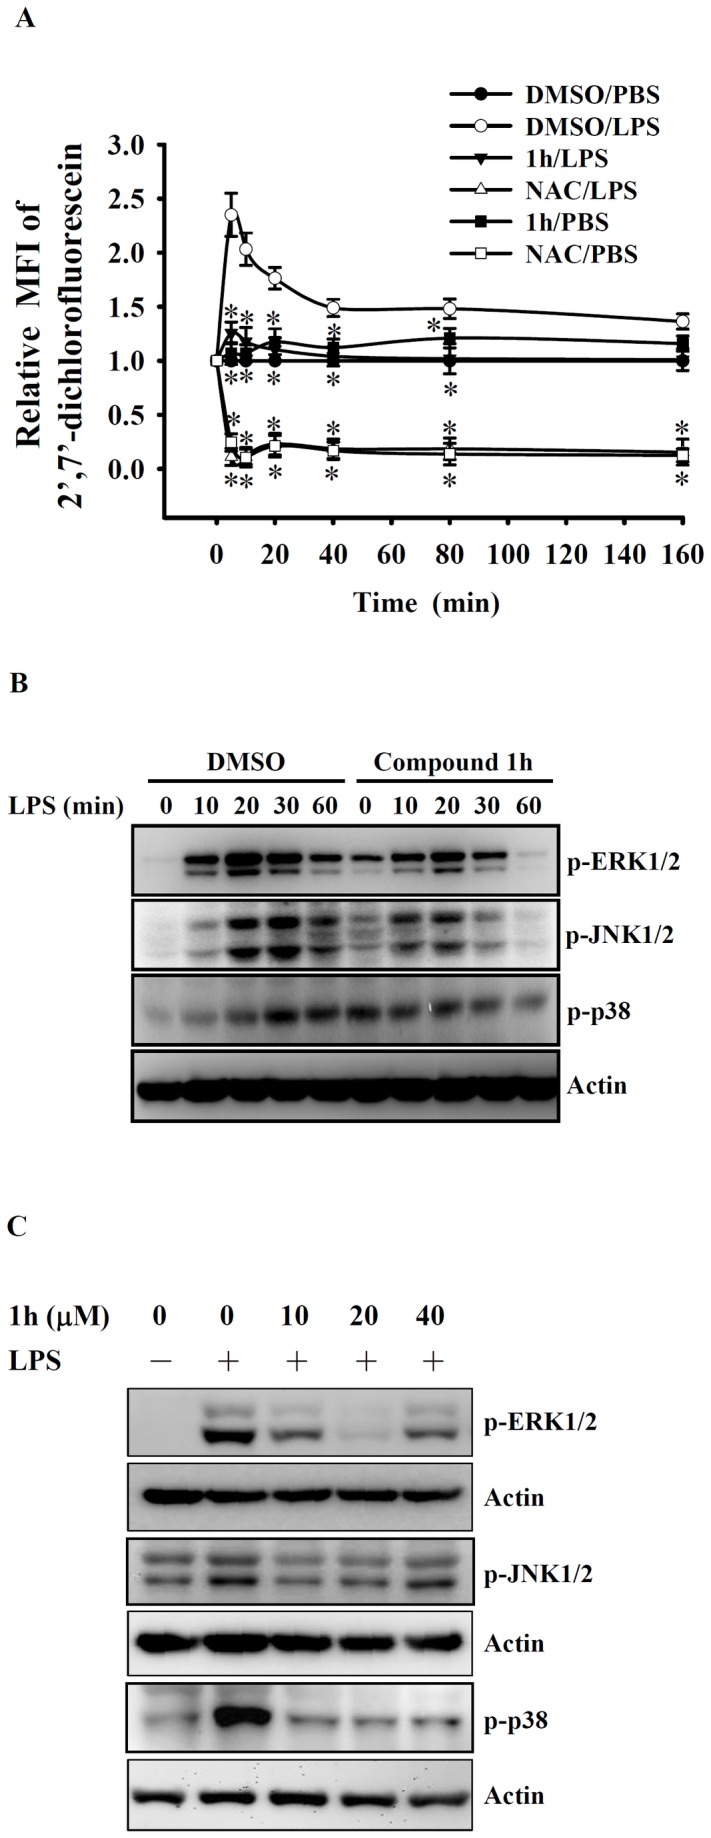 Effect of compound 1h on ROS production and MAPK phosphorylation in LPS-activated macrophages. In ( A ), RAW 264.7 macrophages (5 × 10 5 /ml; 1 ml) were incubated for 30 min with compound 1h (20 µM), N-acetyl cysteine (NAC; 10 mM), or DMSO (vehicle), then 2', 7'-dichlorofluorescein diacetate (2 µM) was added for 30 min, followed by LPS (1 µg/ml) stimulation for the indicated time, then ROS levels were measured by detection of the mean fluorescence intensity (MFI) of the fluorophore carboxyl-DCF and expressing this value relative to that at time zero. In ( B ), RAW 264.7 macrophages (5 × 10 5 /ml; 1 ml) were incubated for 30 min with compound 1h (20 µM) or DMSO, then LPS (1 µg/ml) was added and incubation continued for 0-60 min, then phosphorylation of ERK1/2, JNK1/2, and p38 was analyzed by Western blotting and expressed relative to actin expression and as a fold increase compared to the control group at 0 time. In ( C ), J774A.1 macrophages (5 × 10 5 /ml; 1 ml) were incubated for 30 min with 10-40 µM compound 1h or DMSO, then LPS (1 µg/ml) was added and incubation continued for 20 min, then phosphorylation of ERK1/2, JNK1/2, and p38 was analyzed as in B. In ( A ), the data are expressed as the mean ± SD for three separate experiments, while, in ( B ) and ( C ), the results are representative of those obtained in three different experiments. * indicates a significant difference at the level of p